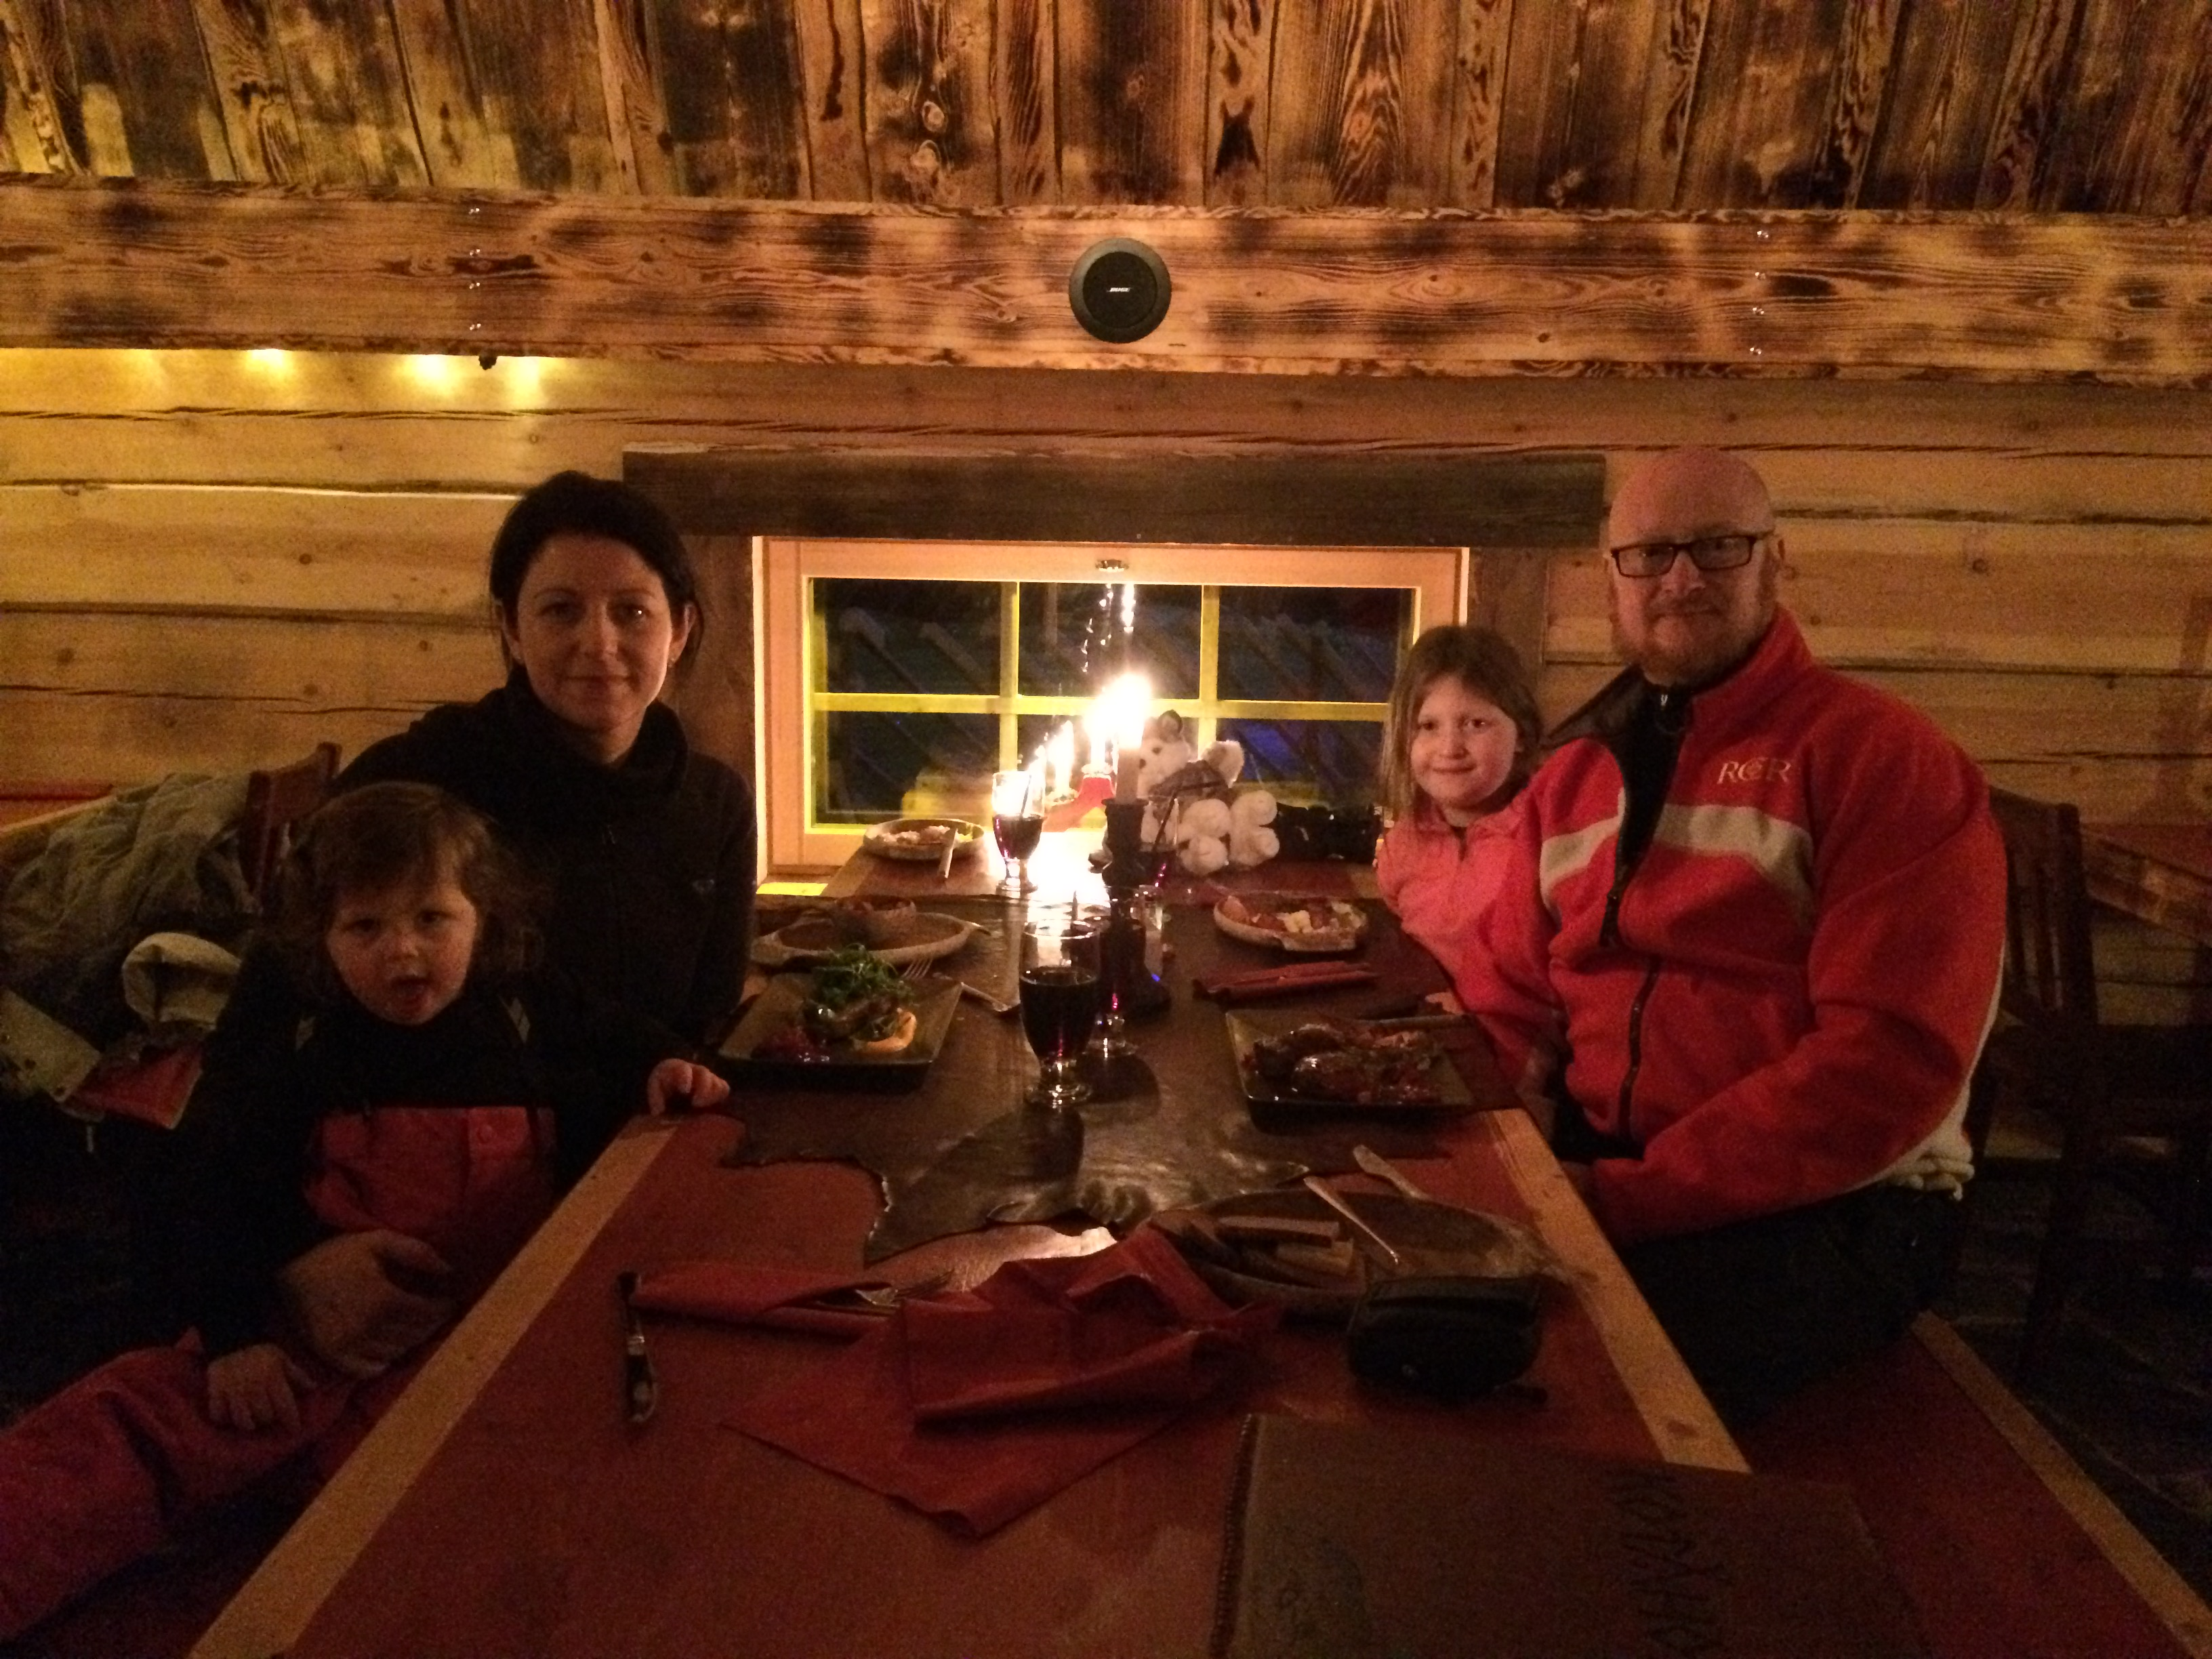 The Callaghan Possy wait to be fed at the Kotahovi Restaurant in Rovaniemi, Finnish Lapland